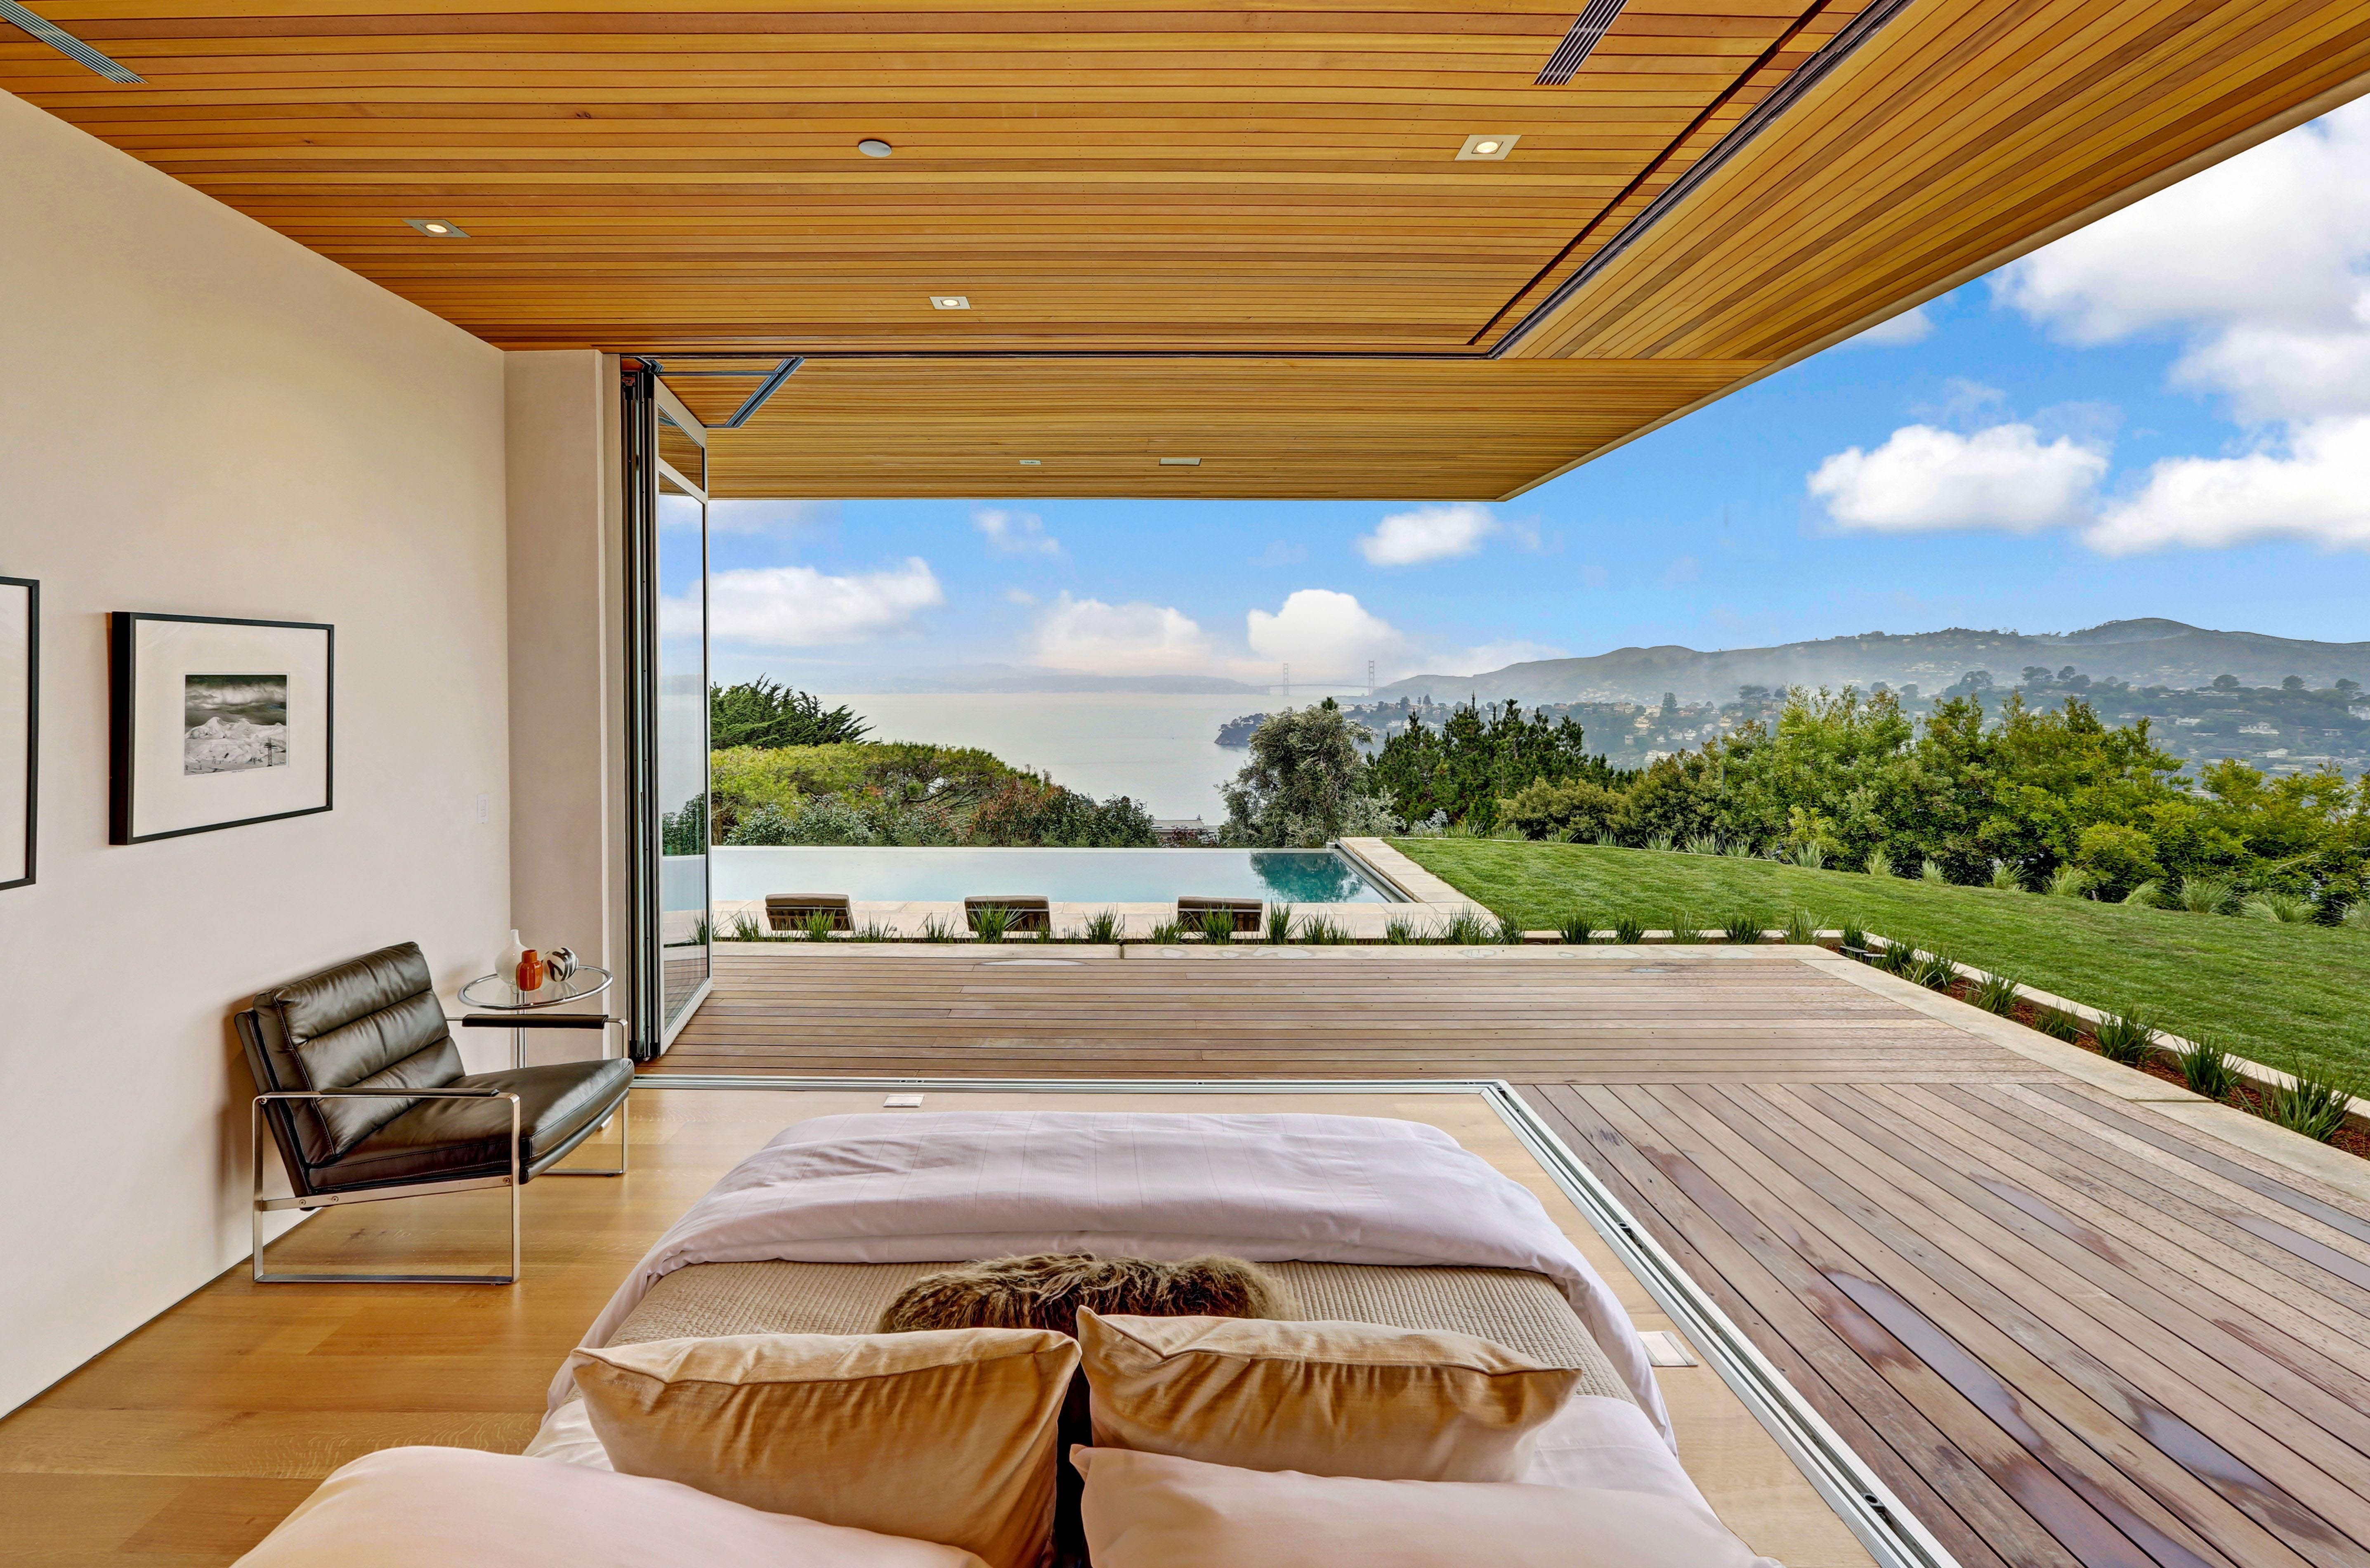 Make Your Outdoor Bedroom Dreams Come True With An Opening Glass Wall Nanawall